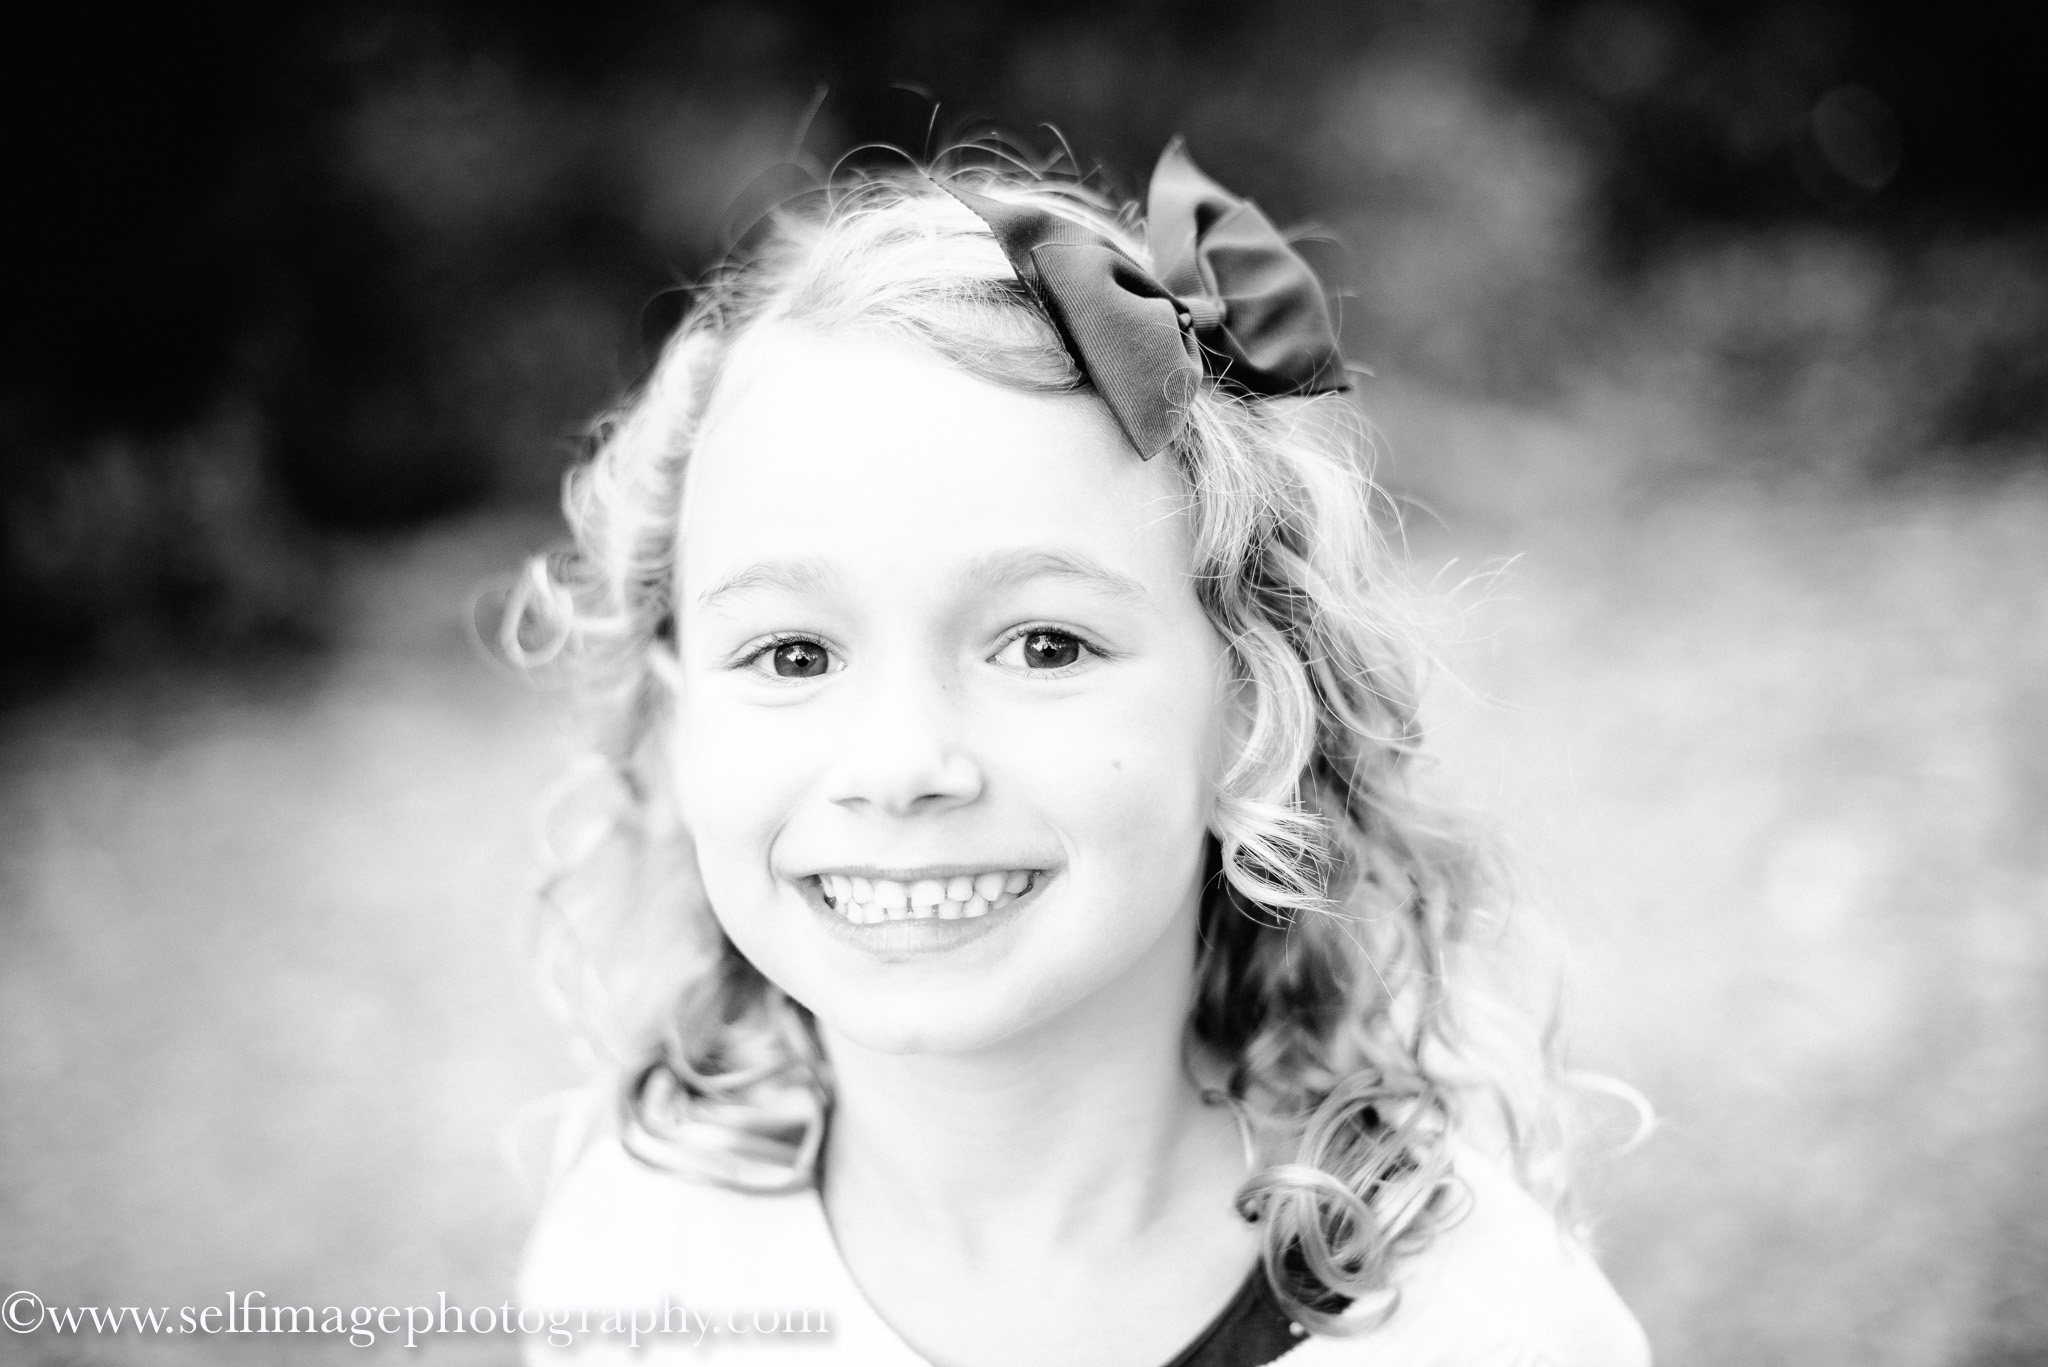 Child Photographer in Rancho Palos Verdes, CA